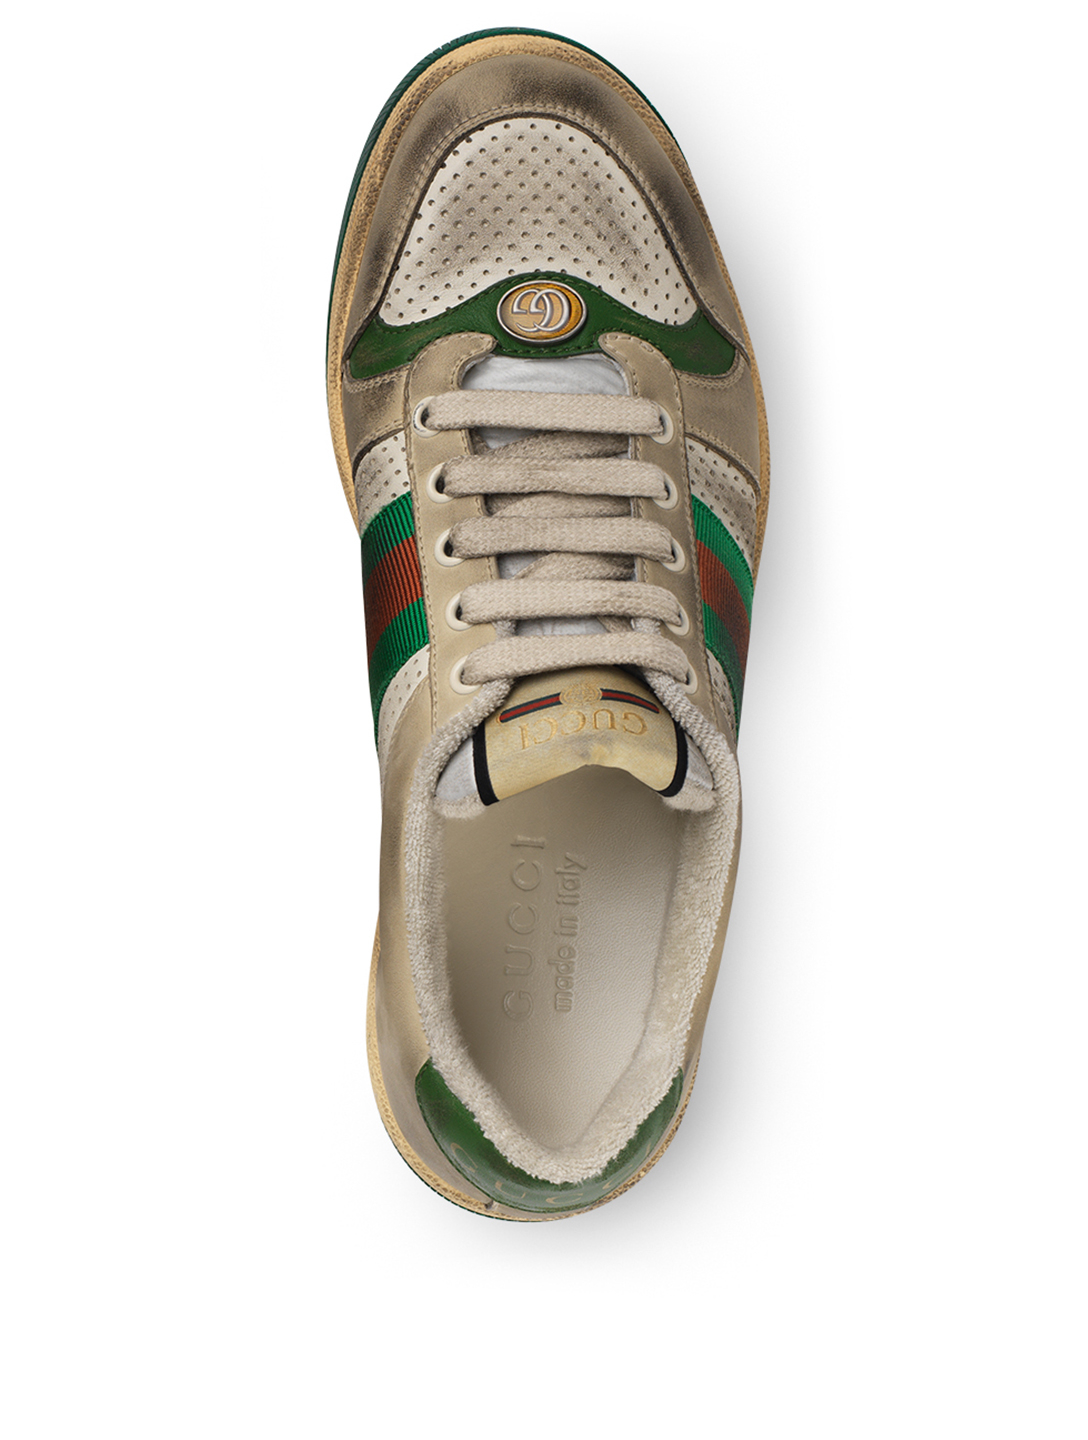 7600c7ab26 GUCCI Screener Leather Sneakers | Holt Renfrew